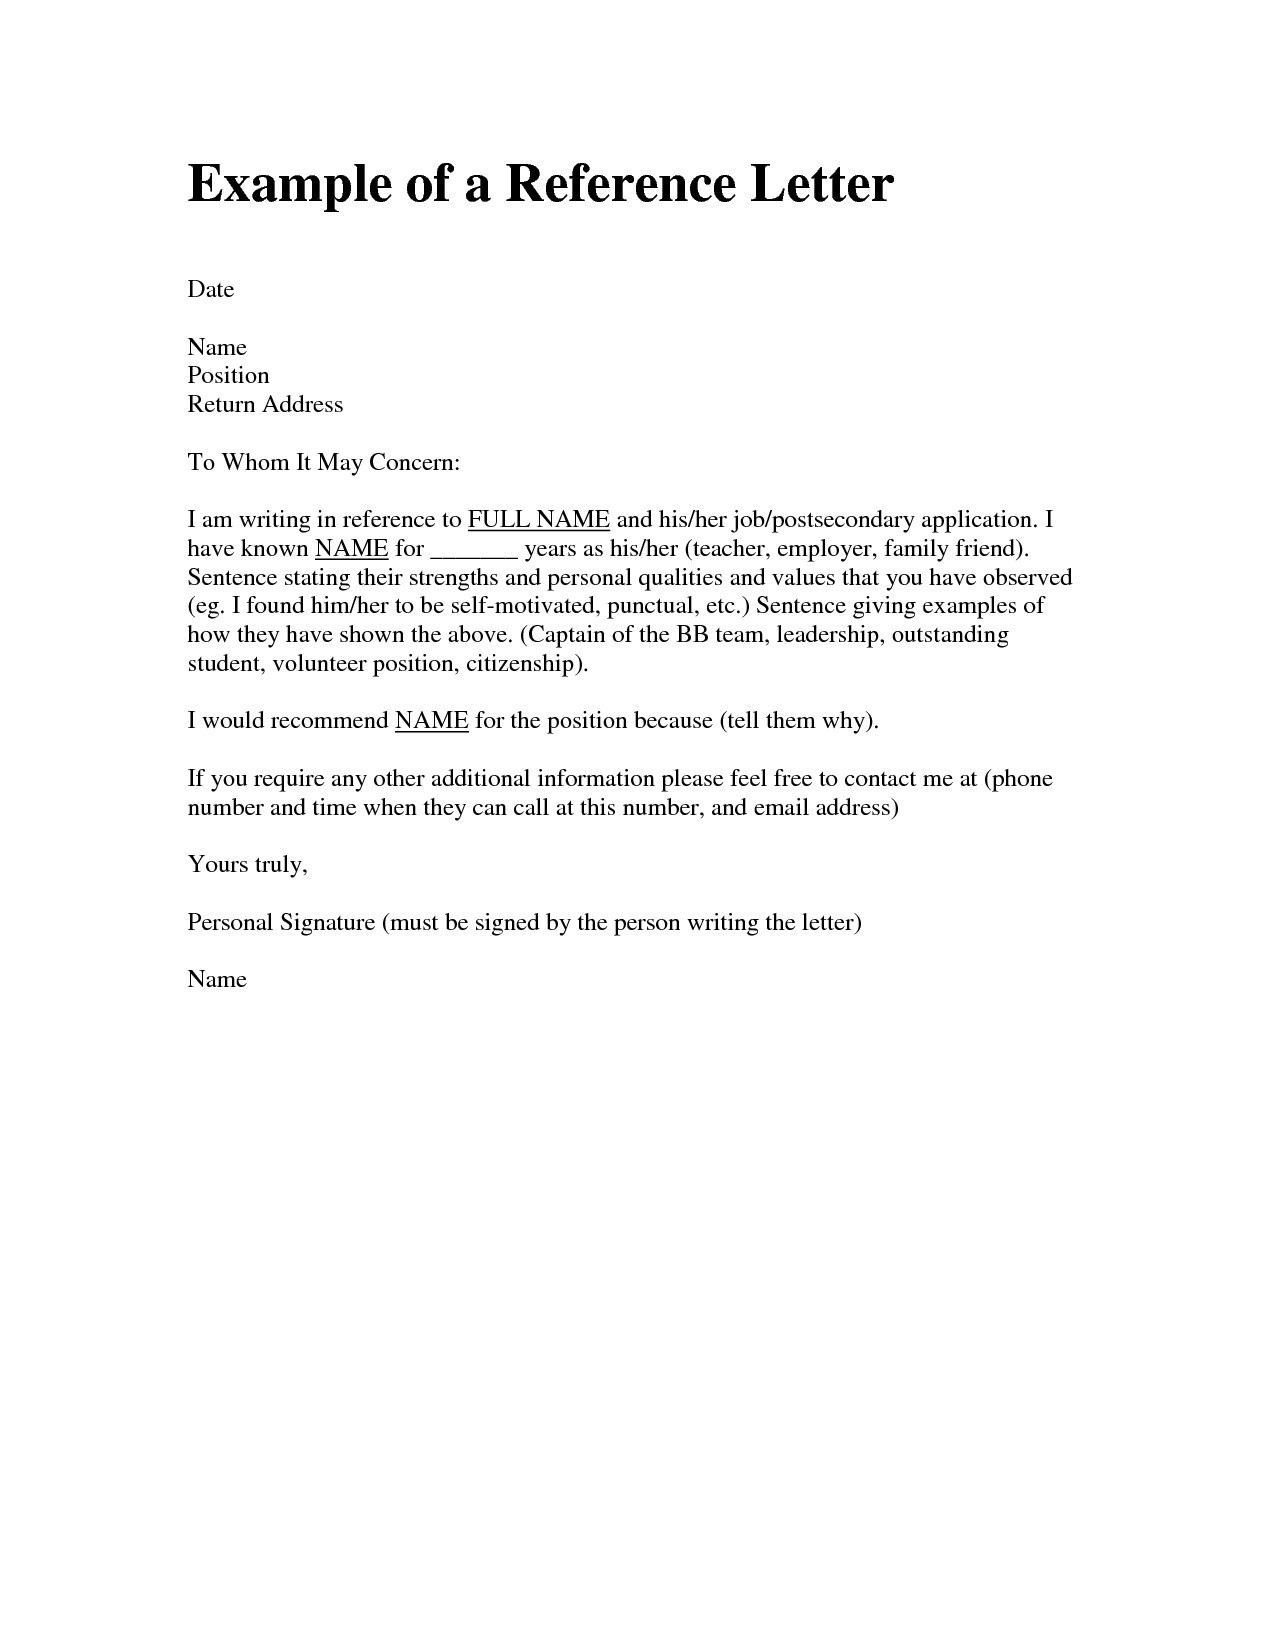 Personal Letter Of Recommendation for A Friend Template - Example Personal Re Mendation Letter for Job Best Re Mendation